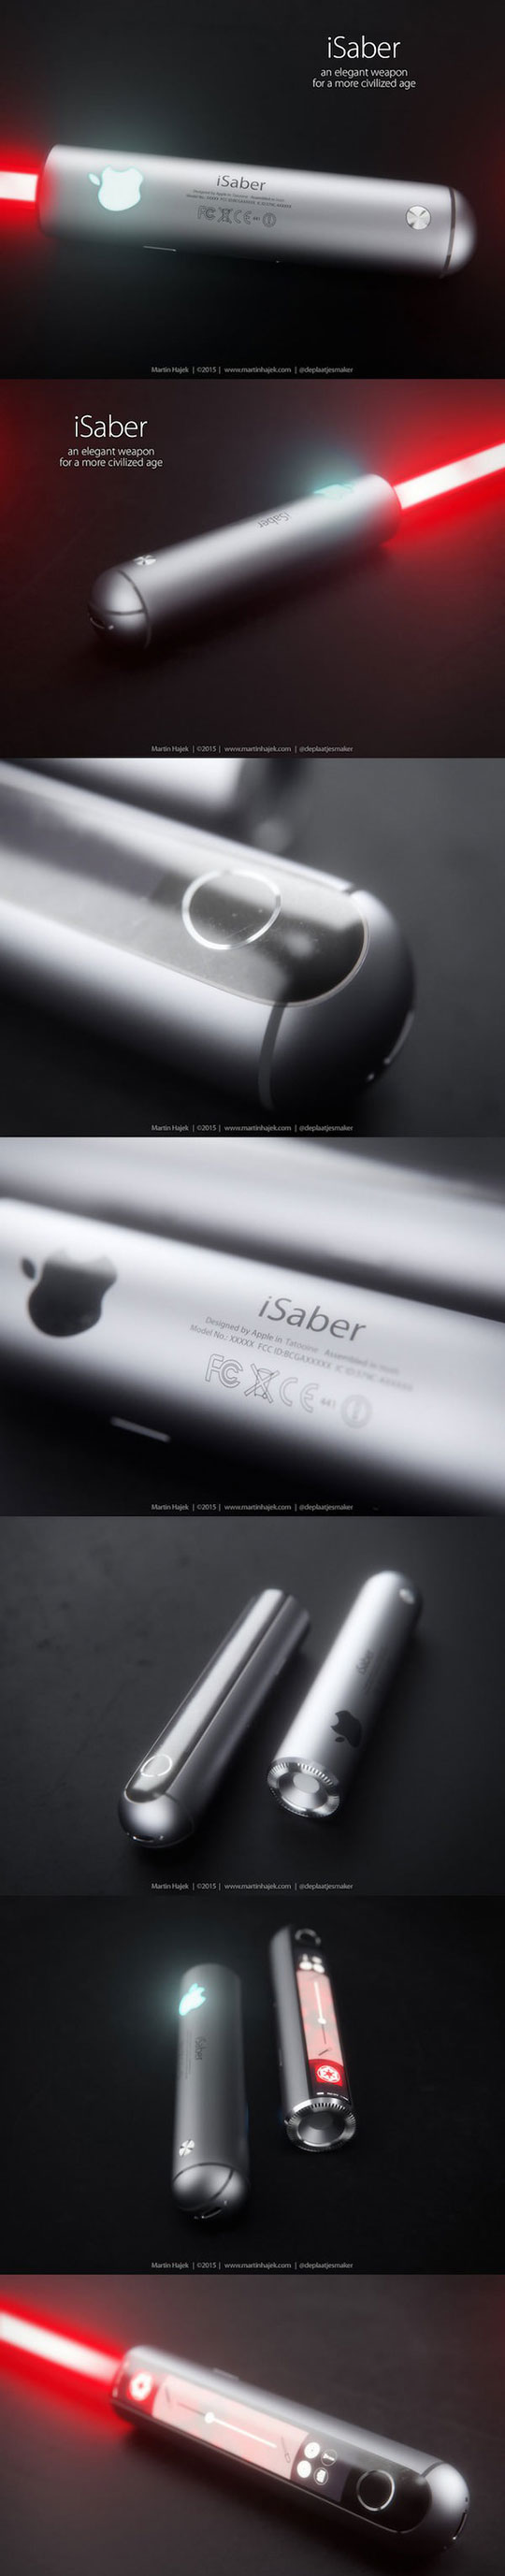 This Is What The iSaber Would Look Like If Apple Made Lightsabers